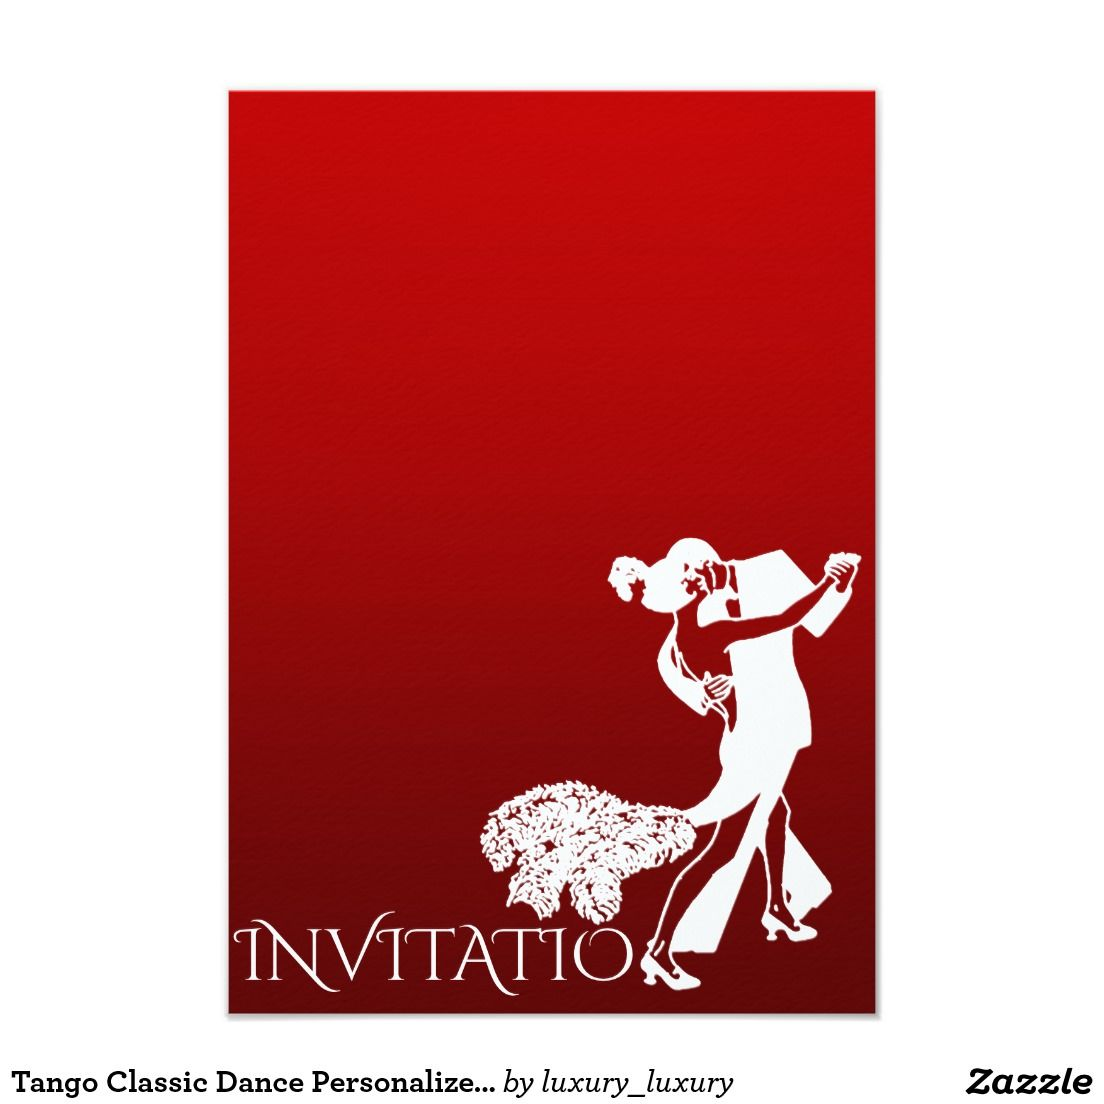 Tango Classic Dance Personalized Red Wine Field Card | Pinterest